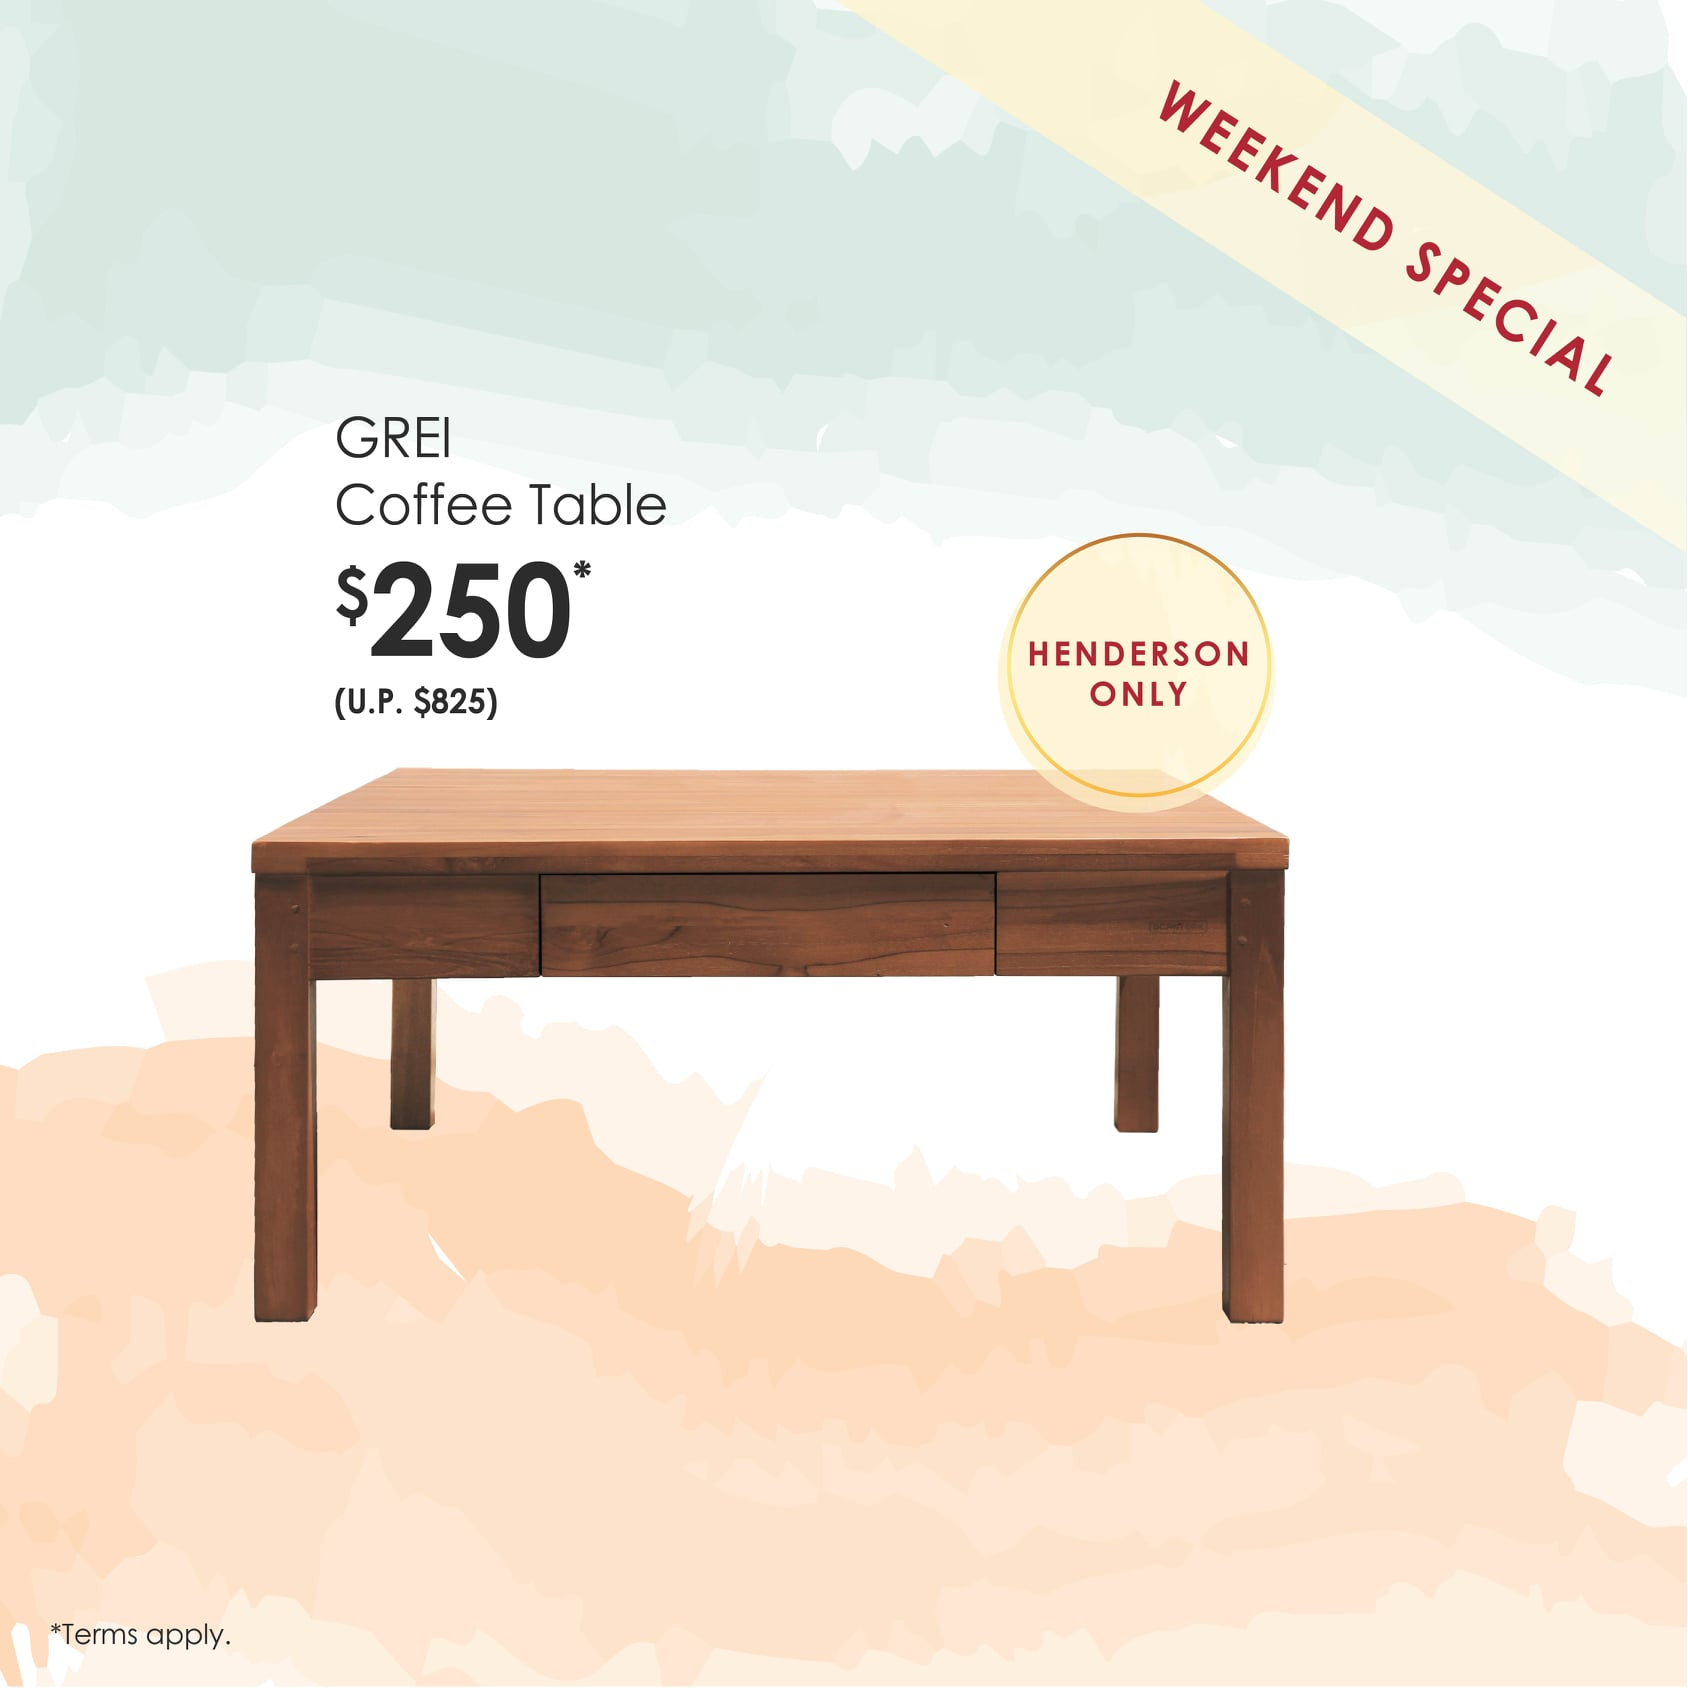 Scanteak Singapore is having a Clearance Sale Up to 60% Off Promotion 8-11 Nov 2019 | Why Not Deals 5 & Promotions